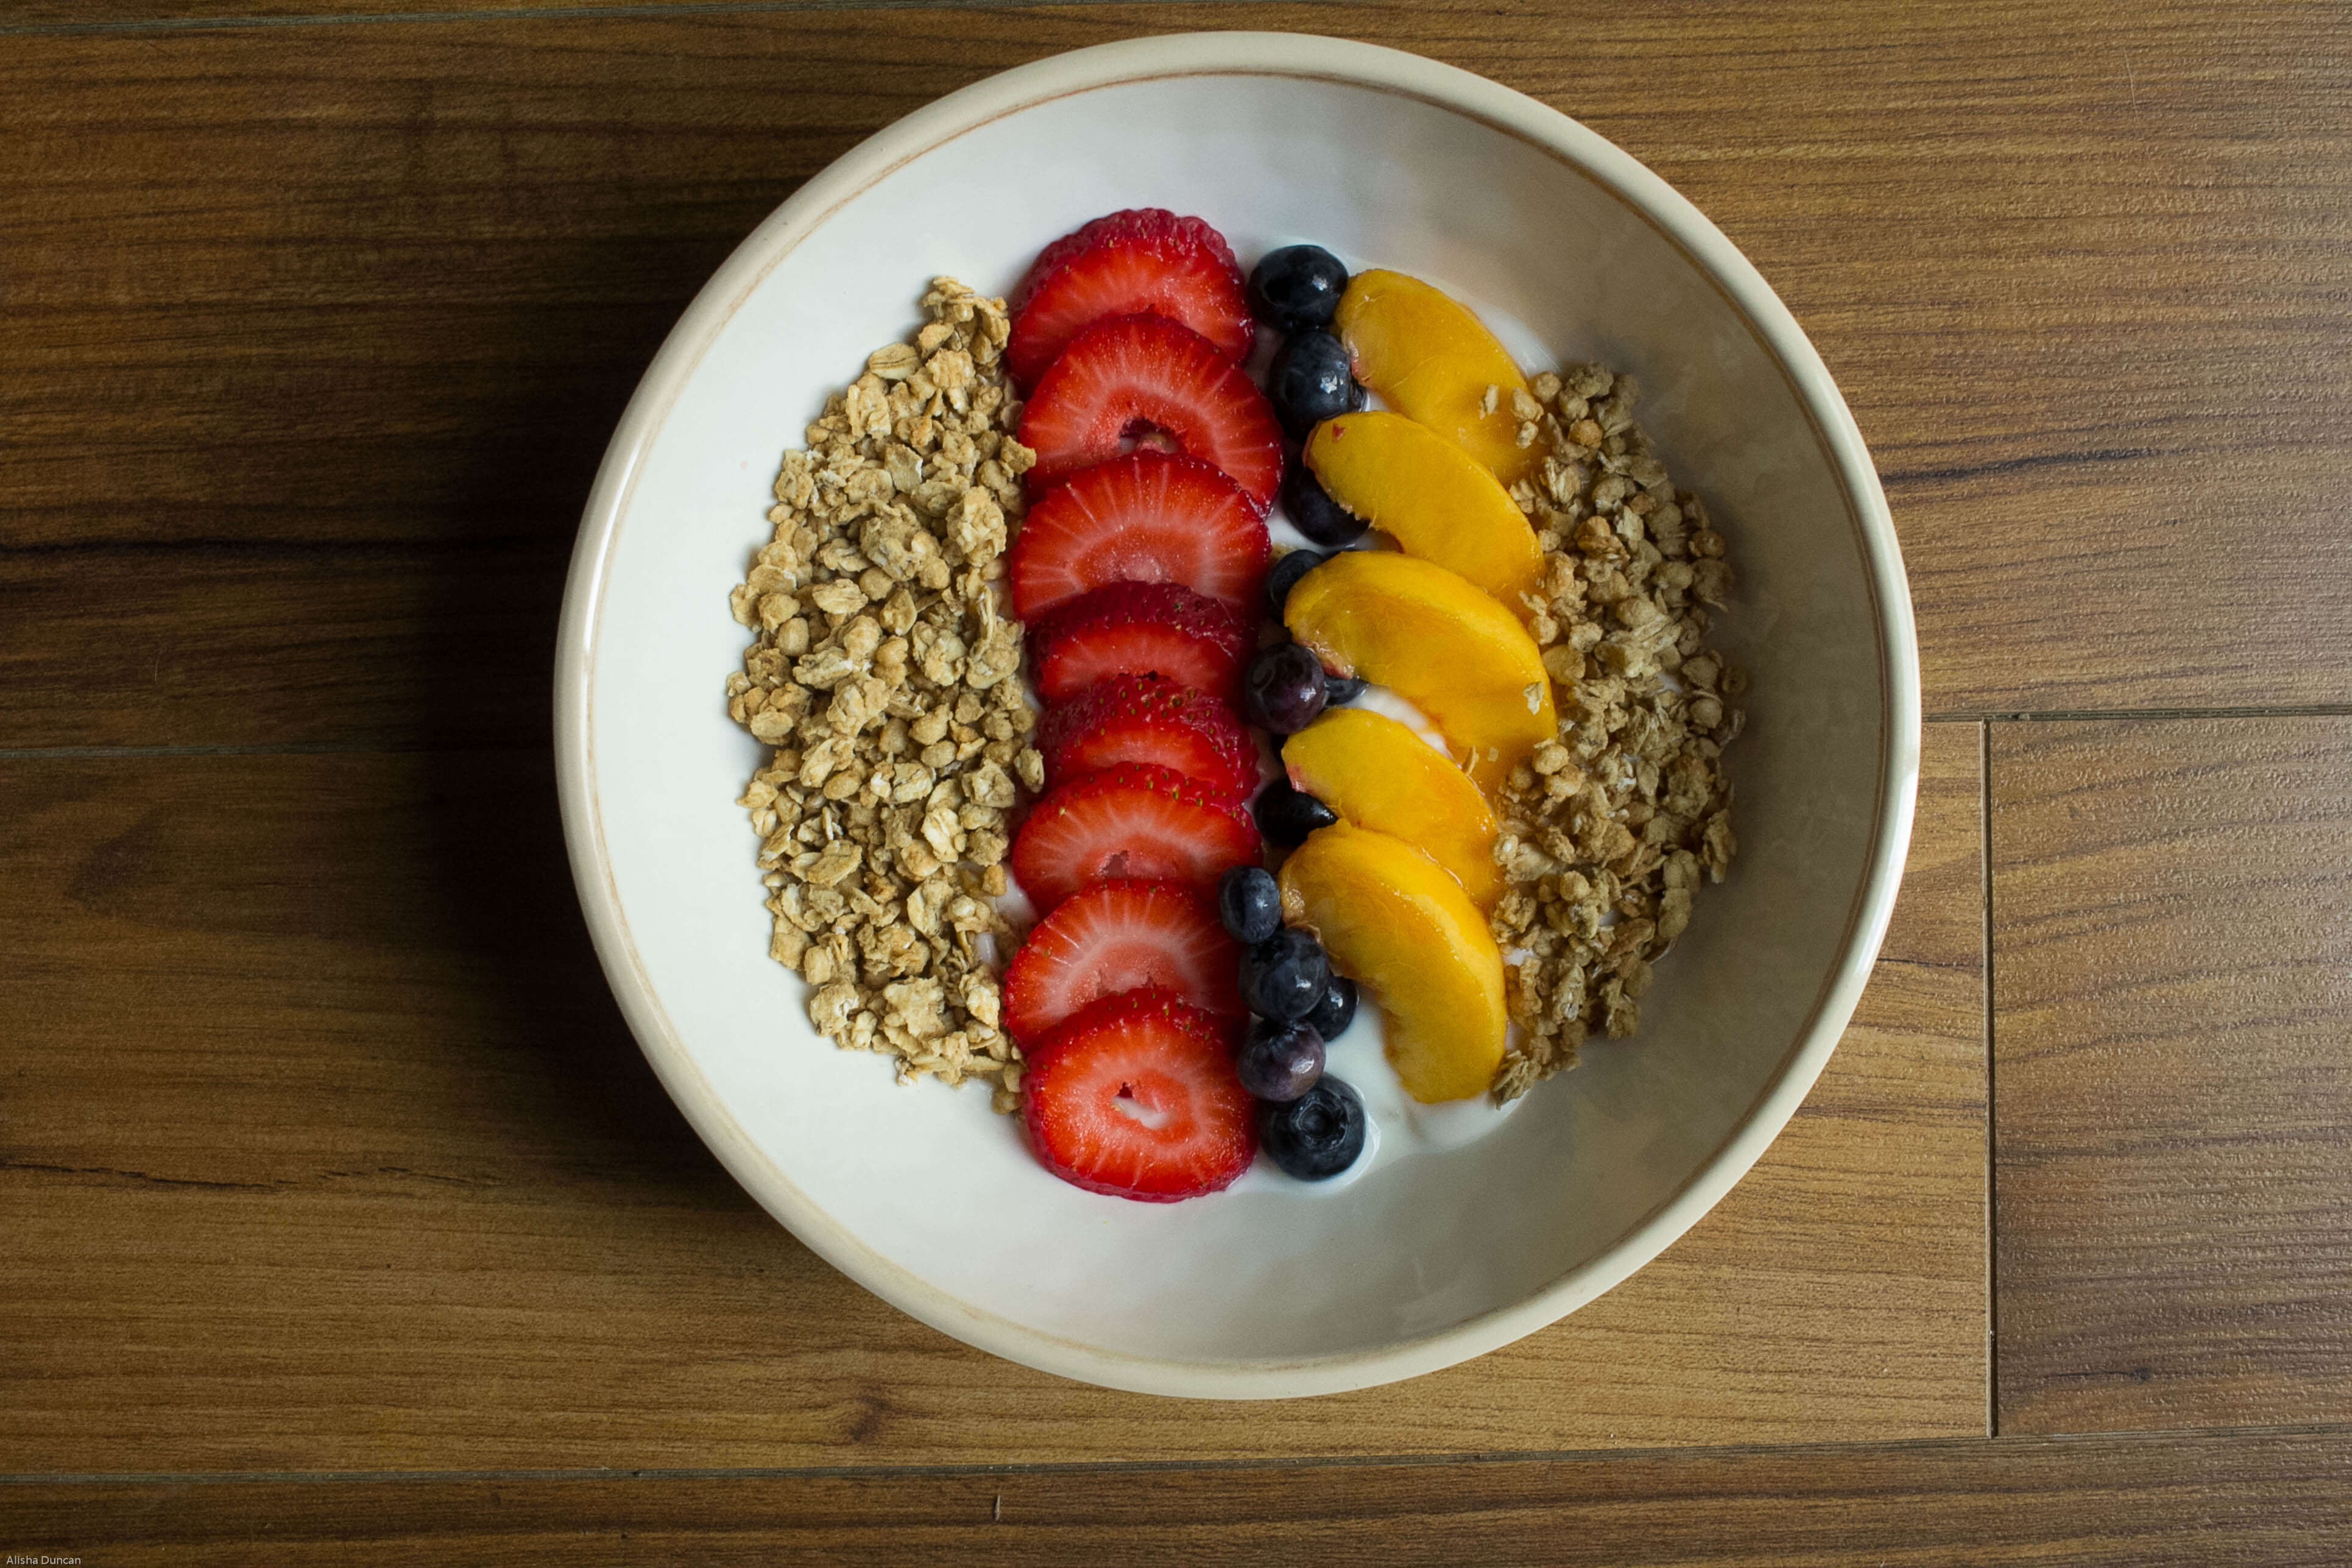 TOTS Family, Parenting, Kids, Food, Crafts, DIY and Travel IMG_7534 Morning Yogurt Breakfast Bowl Breakfast Food TOTS Family  recipe breakfast